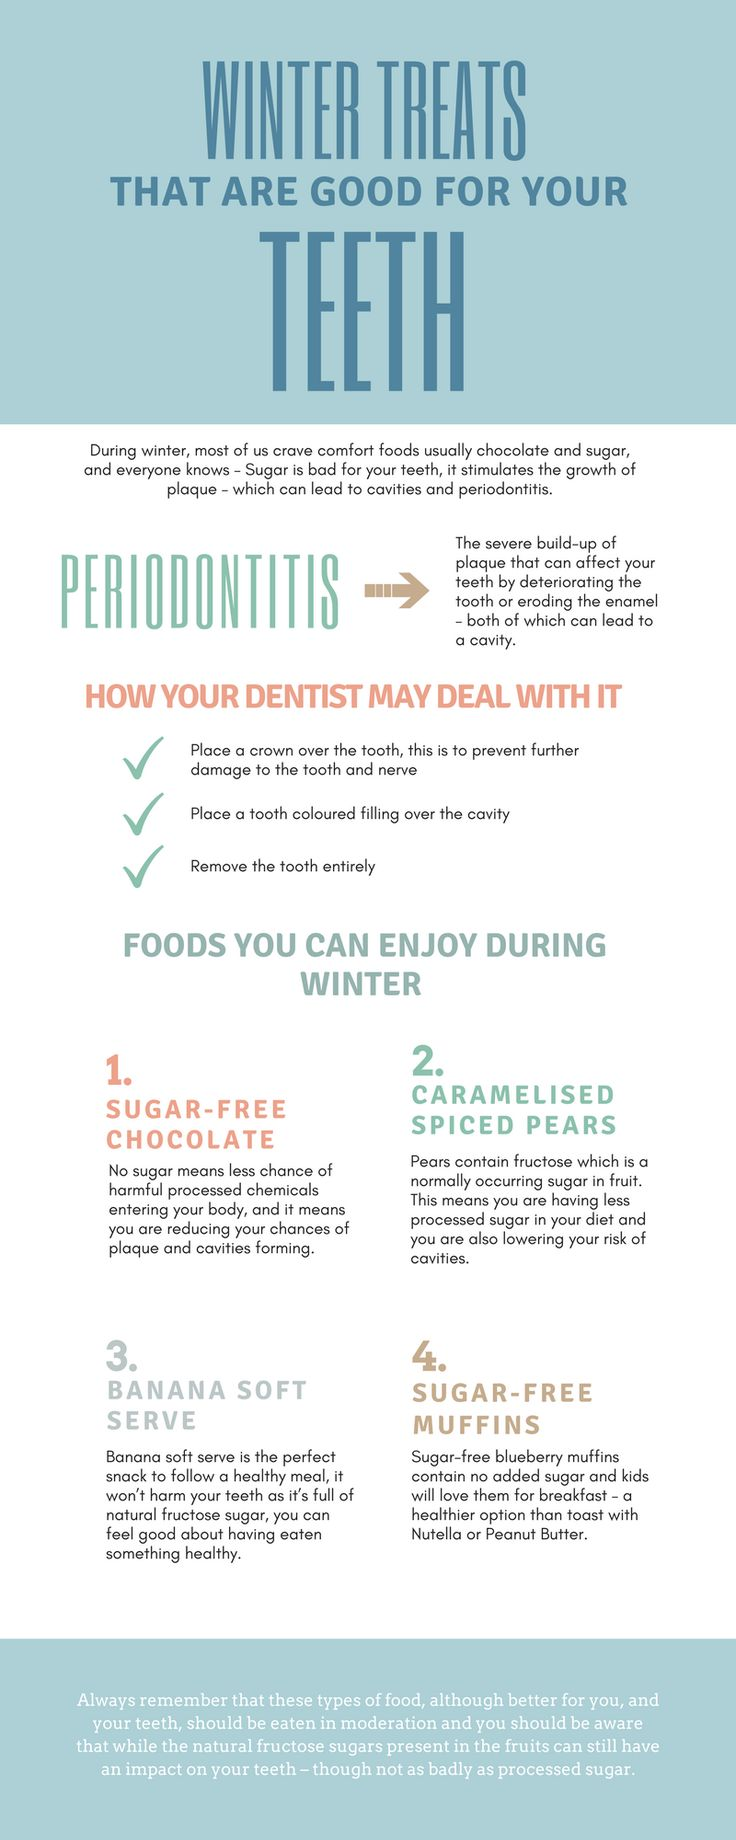 There are various good treats for your teeth that you can eat in the winter season without any harm. Look at this info-graphic and know the teeth suitable food.